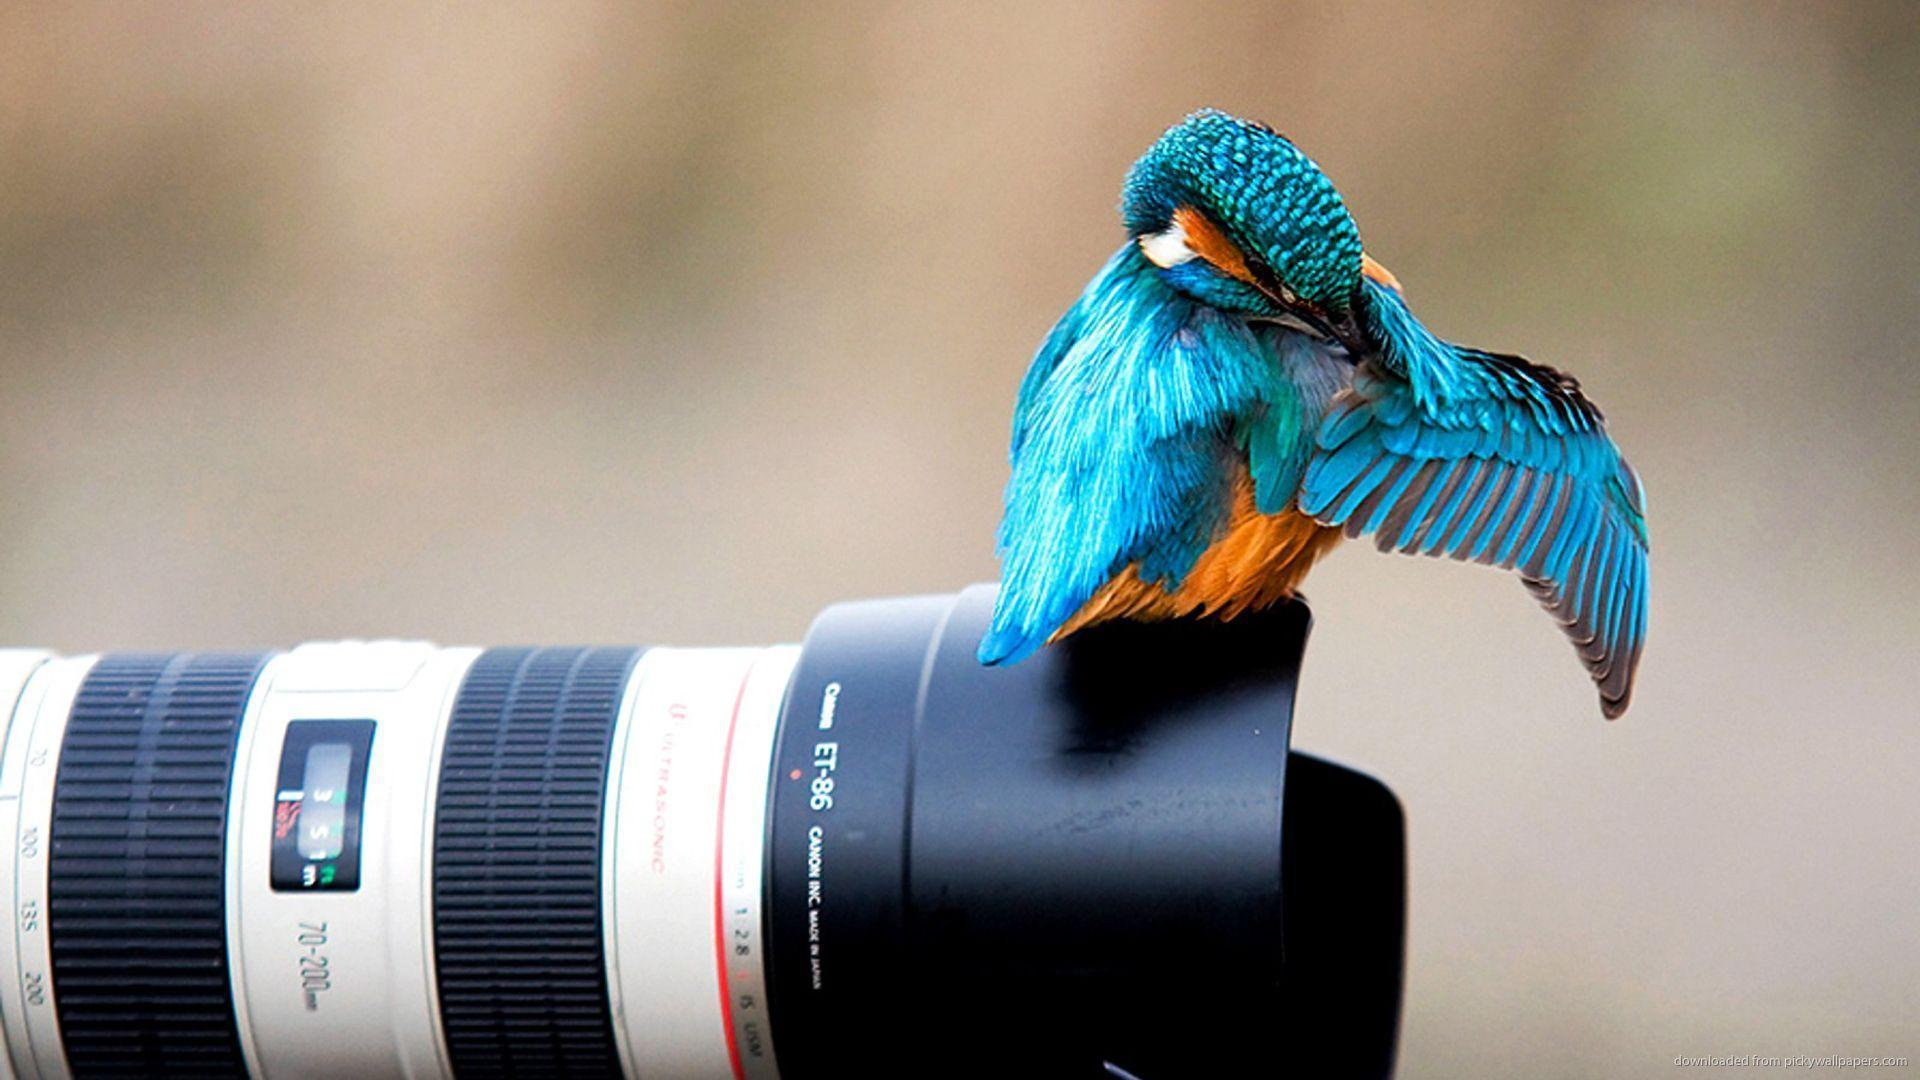 Download 1920x1080 Blue Bird On A Canon Lens Wallpaper